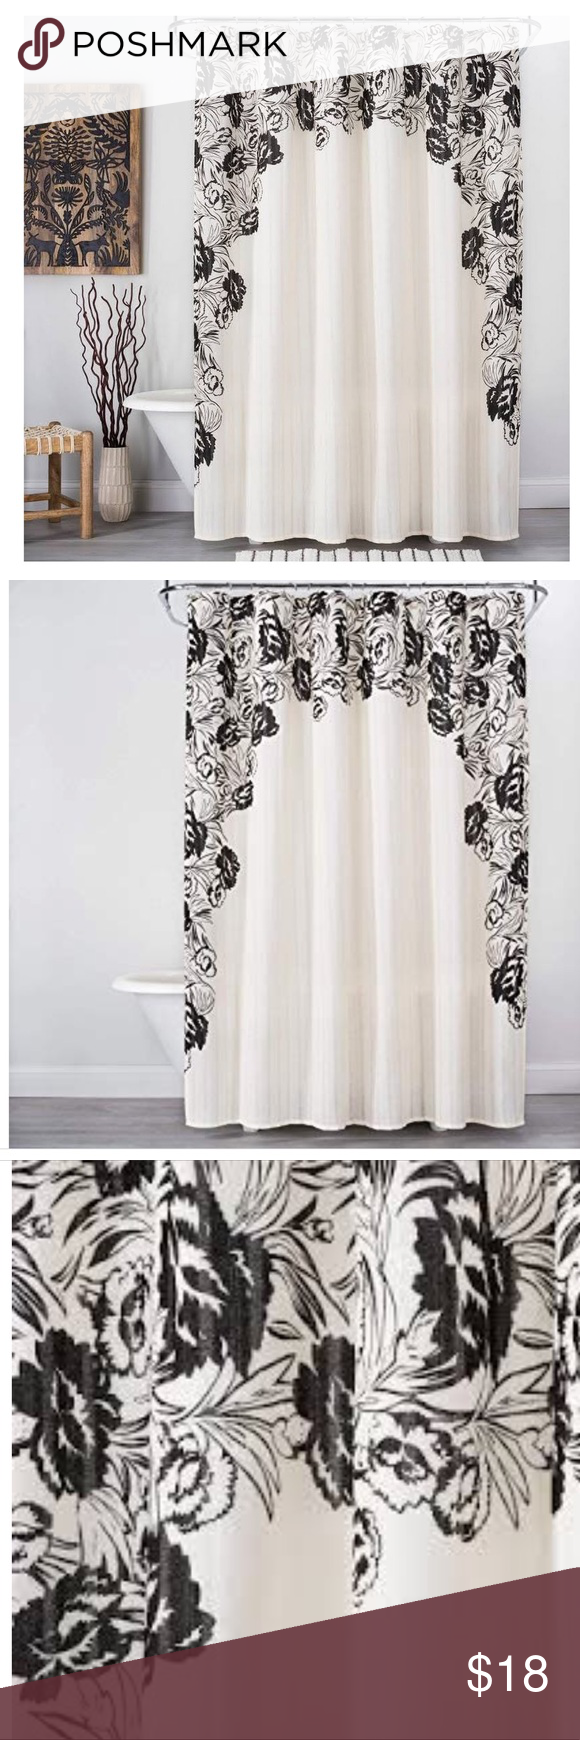 Classy Floral Shower Curtain Nwot Off White And Black Opalhouse